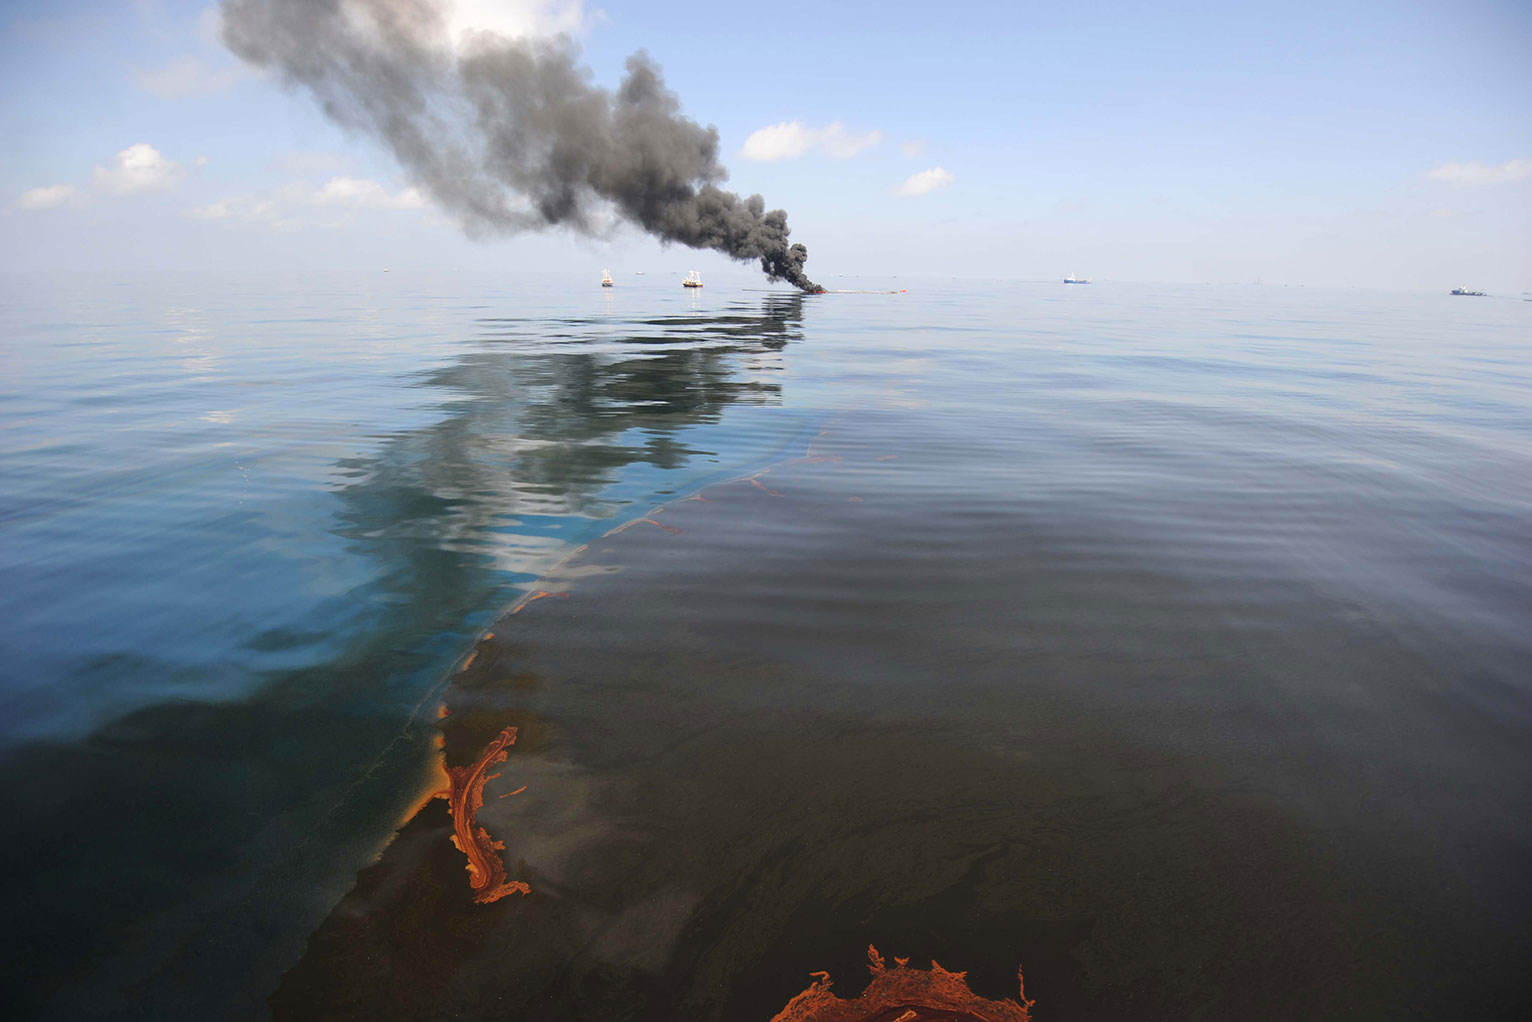 bp oil spill essay Writepass - essay writing - dissertation topics [toc]introductiondeepwater horizon oil spillage in the mexican gulf:implications of the ecological disaster on the bp's share price:bibliography:references:related introduction deepwater horizon oil spillage in the mexican gulf: deepwater horizon platform was an ultra-deepwater, semi.